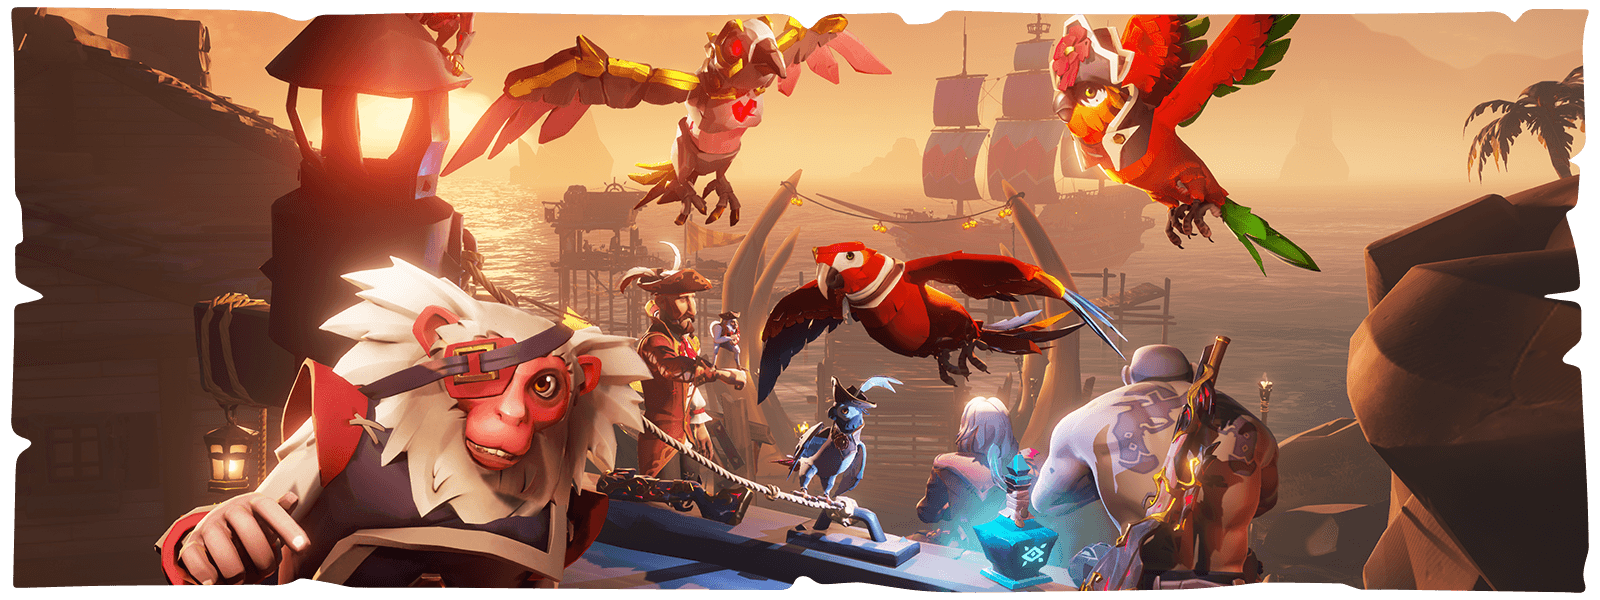 Personages, papegaaien en een aap voor een haven van Sea of Thieves